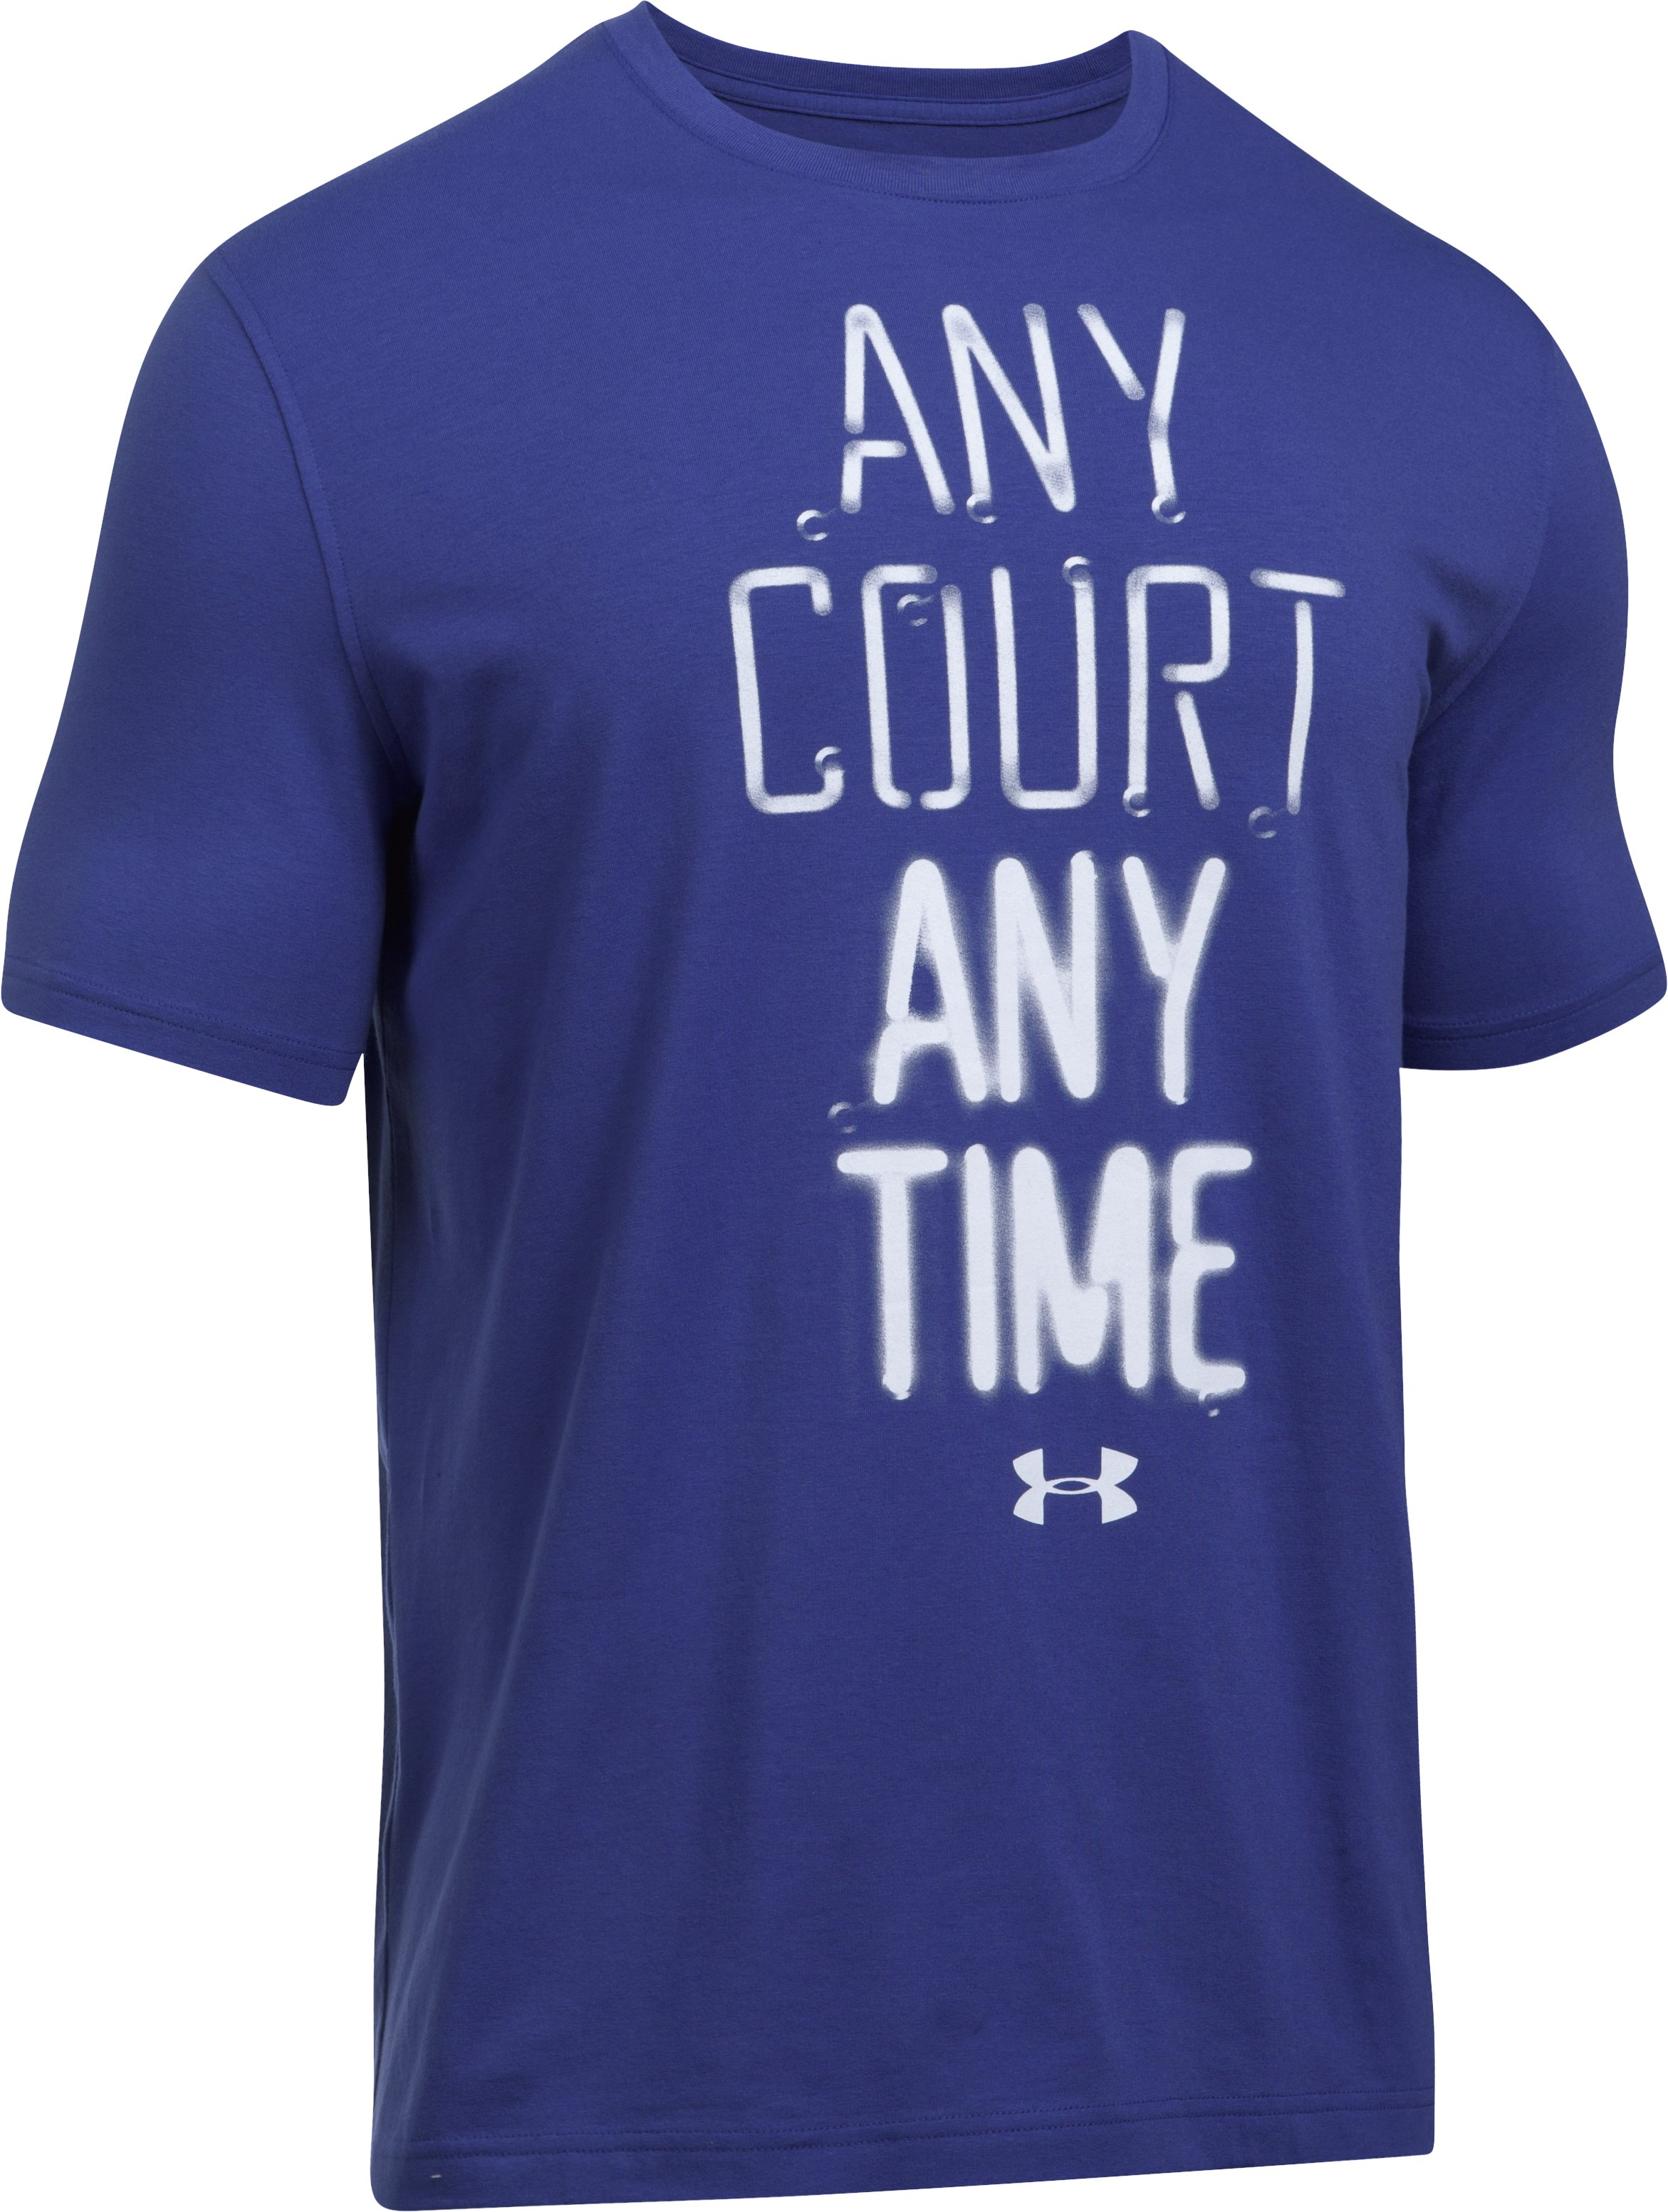 Men's UA Any Court Any Time T-Shirt, Pluto, undefined